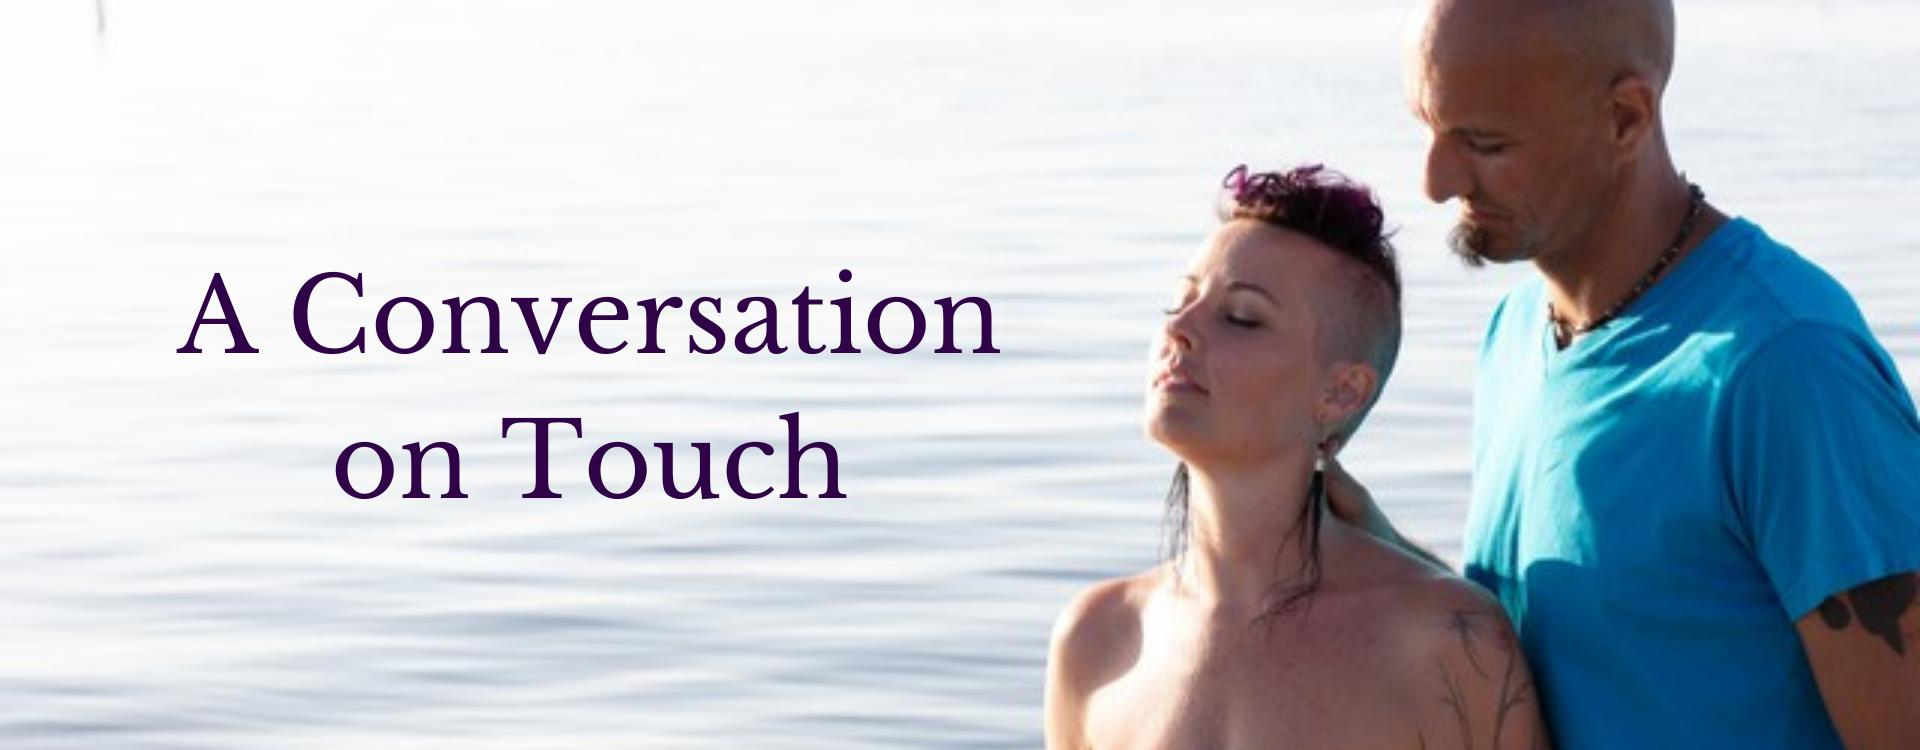 A Conversation on Touch, That Human Touch…